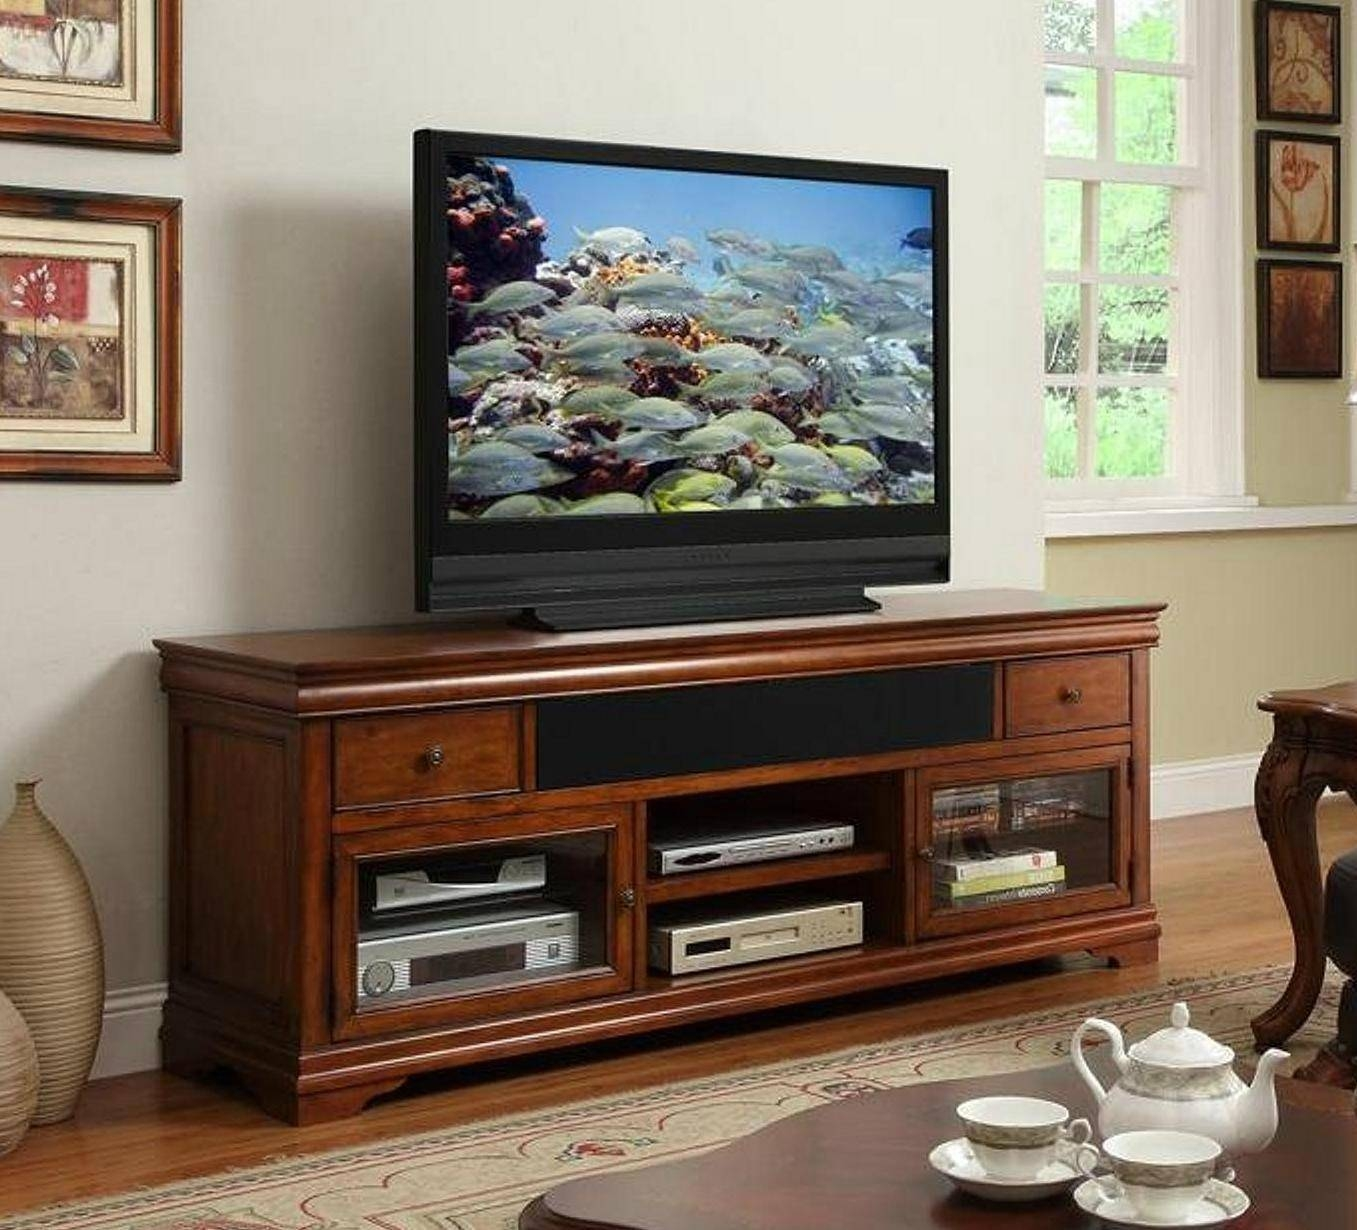 Cherrywood Tv Stand Cherry Wood Tv Stand With Electric Fireplace Inside Cherry Wood Tv Stands (View 5 of 15)